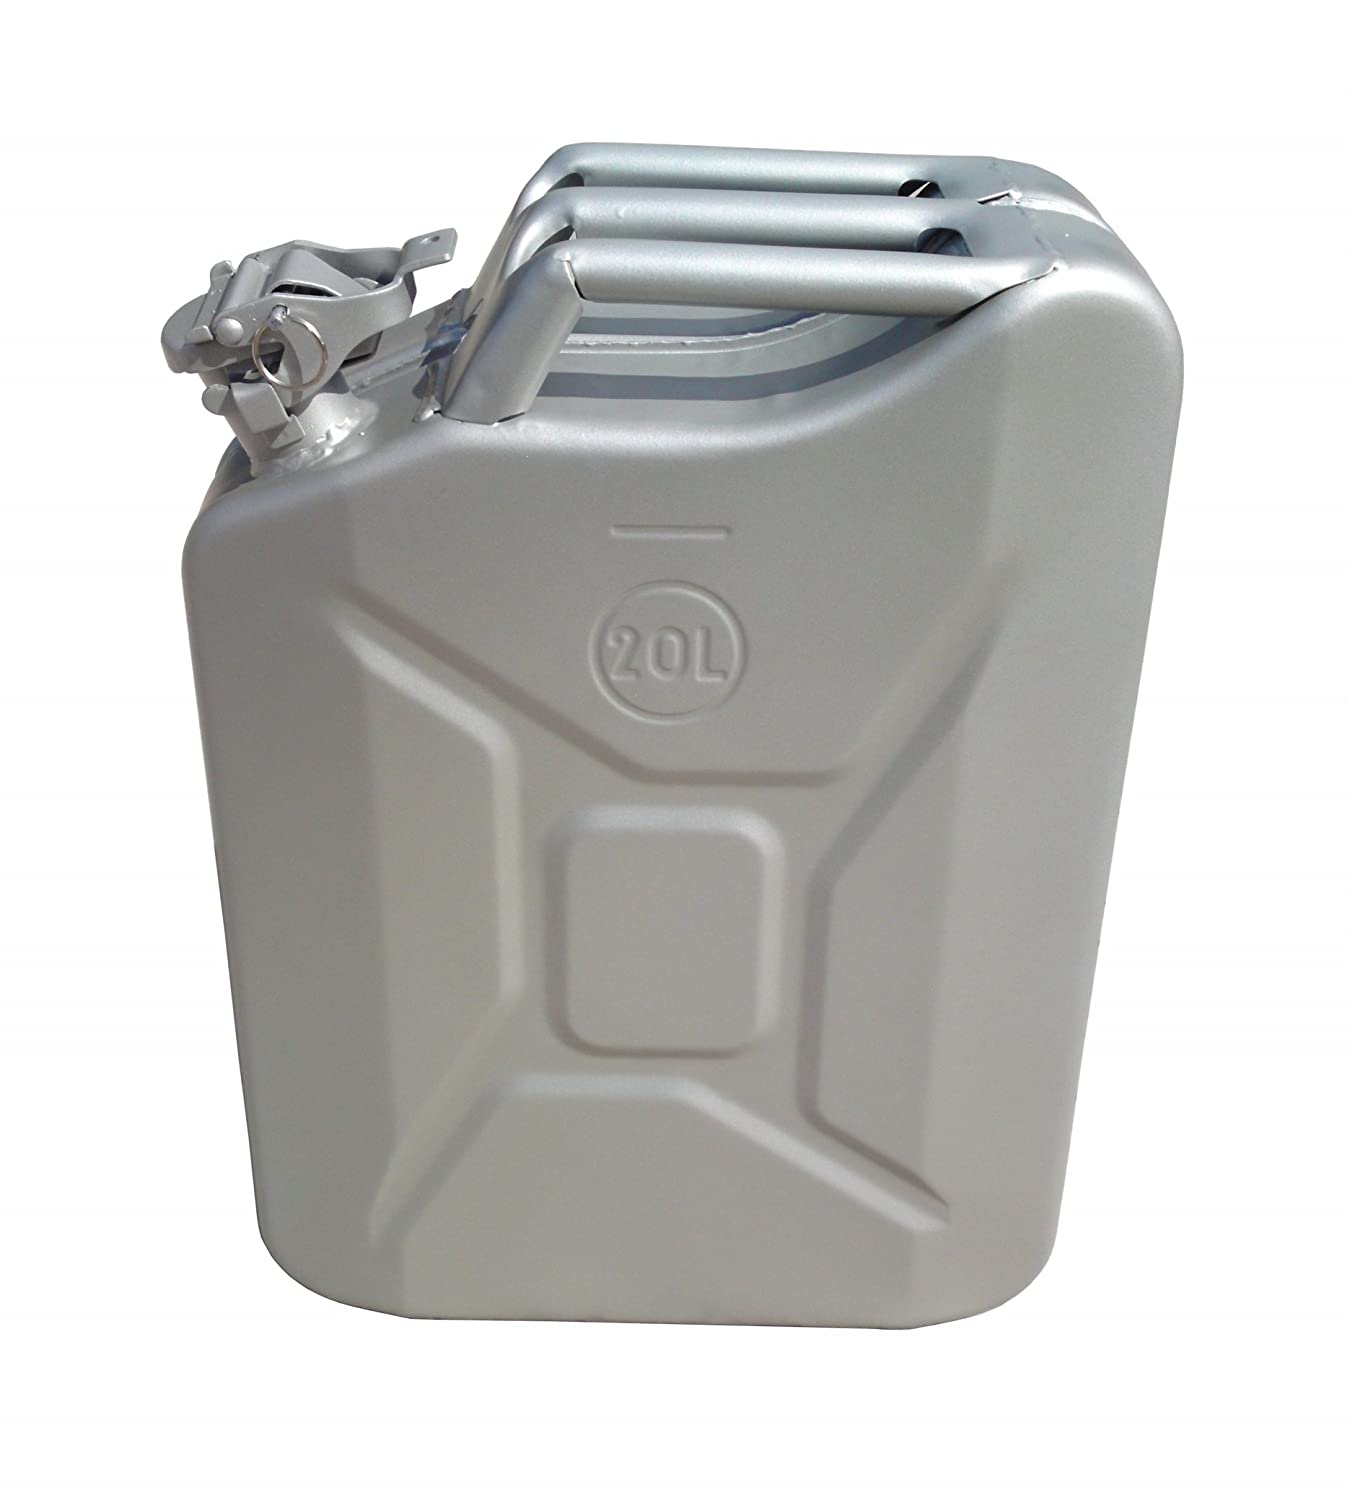 20 Litre Silver Jerry Can for Fuel Petrol Diesel etc ASC